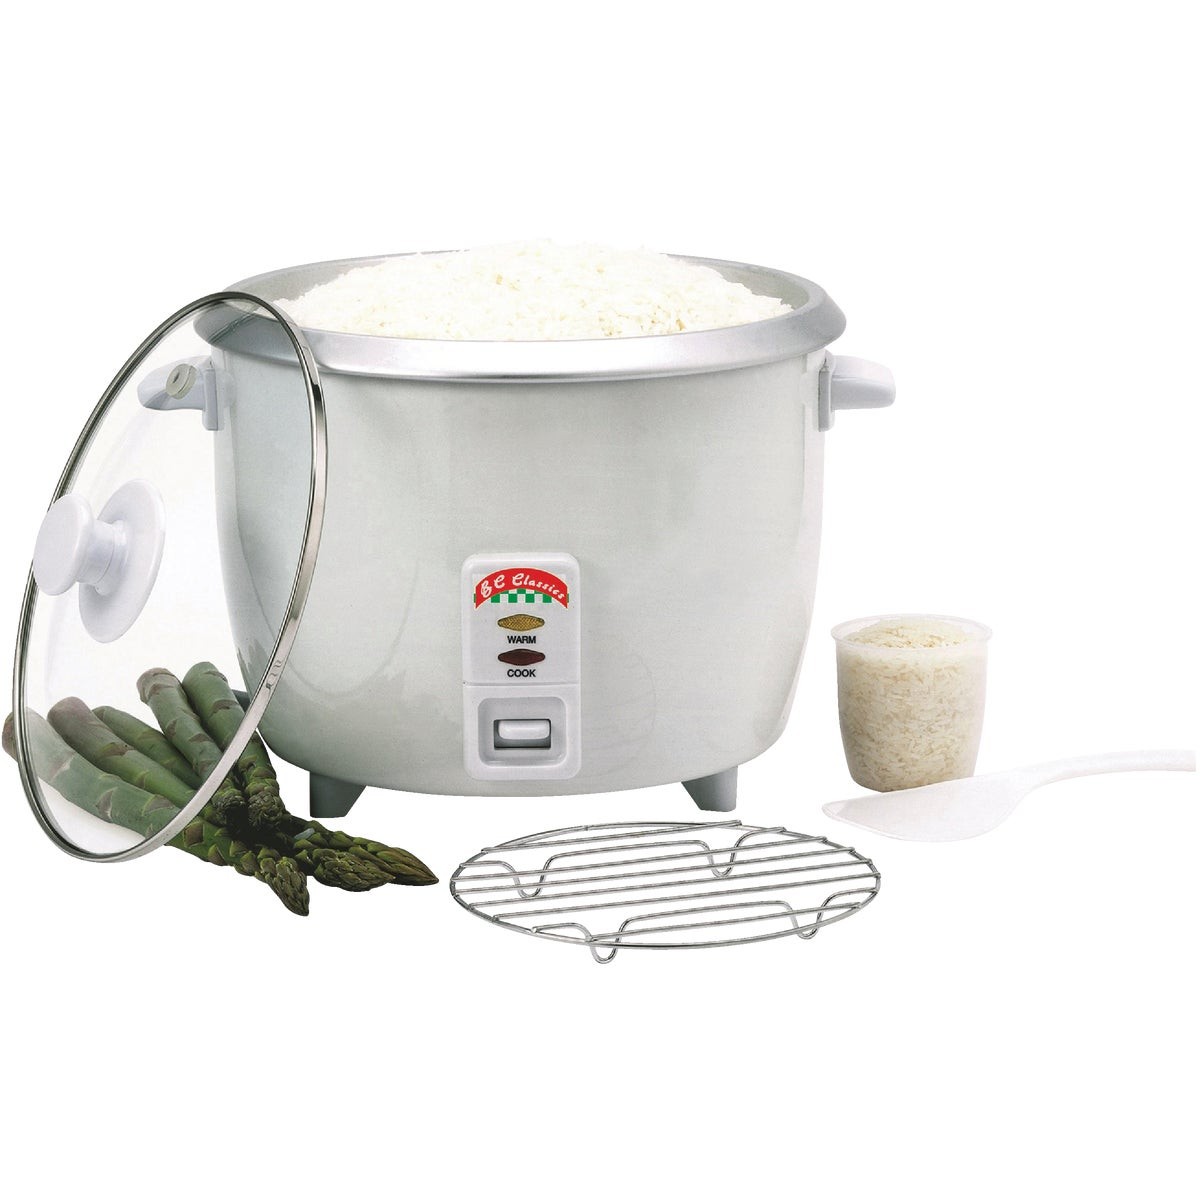 10 CUP RICE COOKER - BC-12418 by MBR Industries